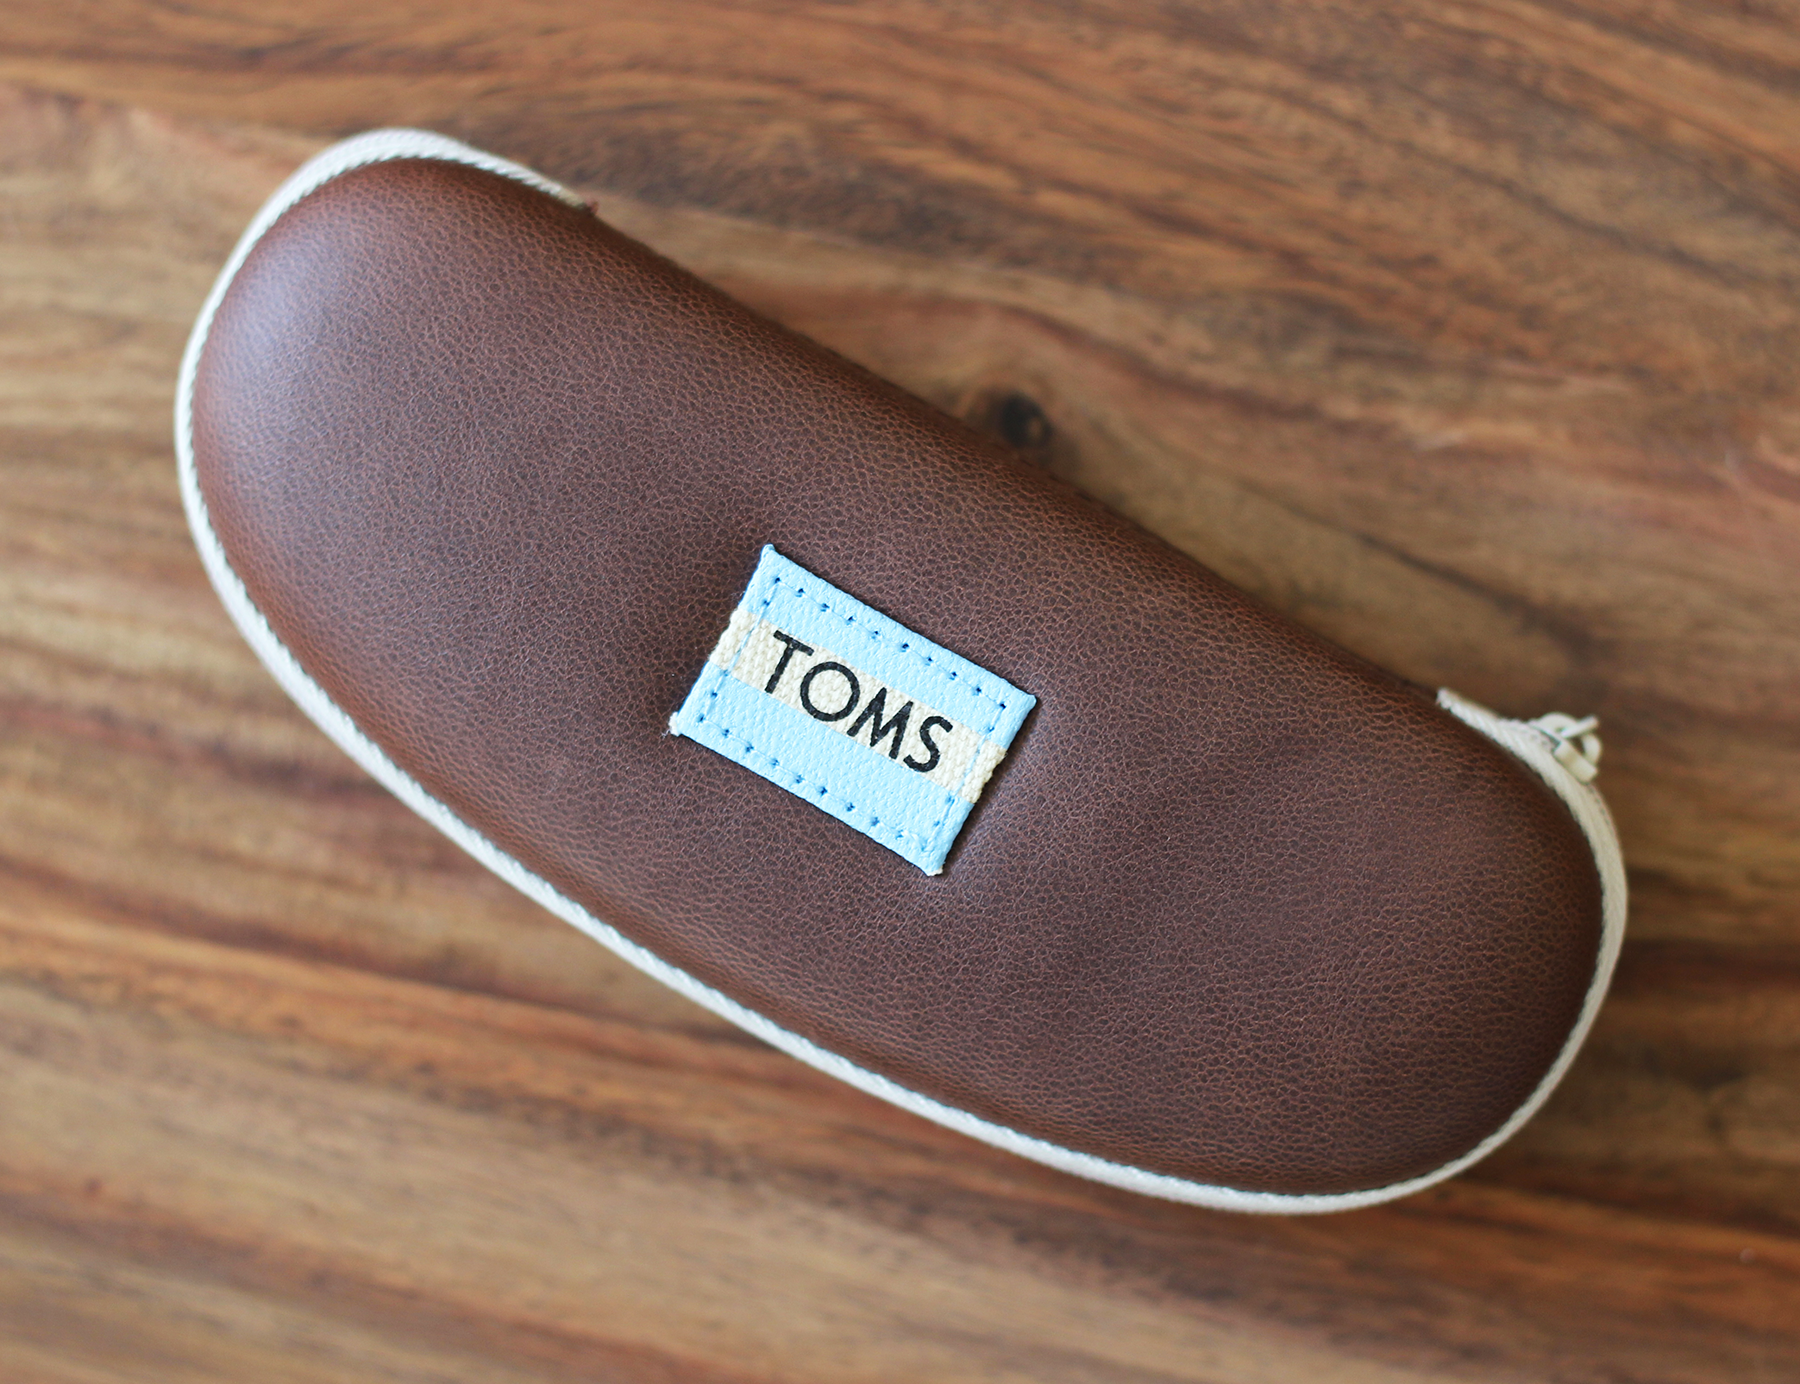 Toms Sunglasses Case